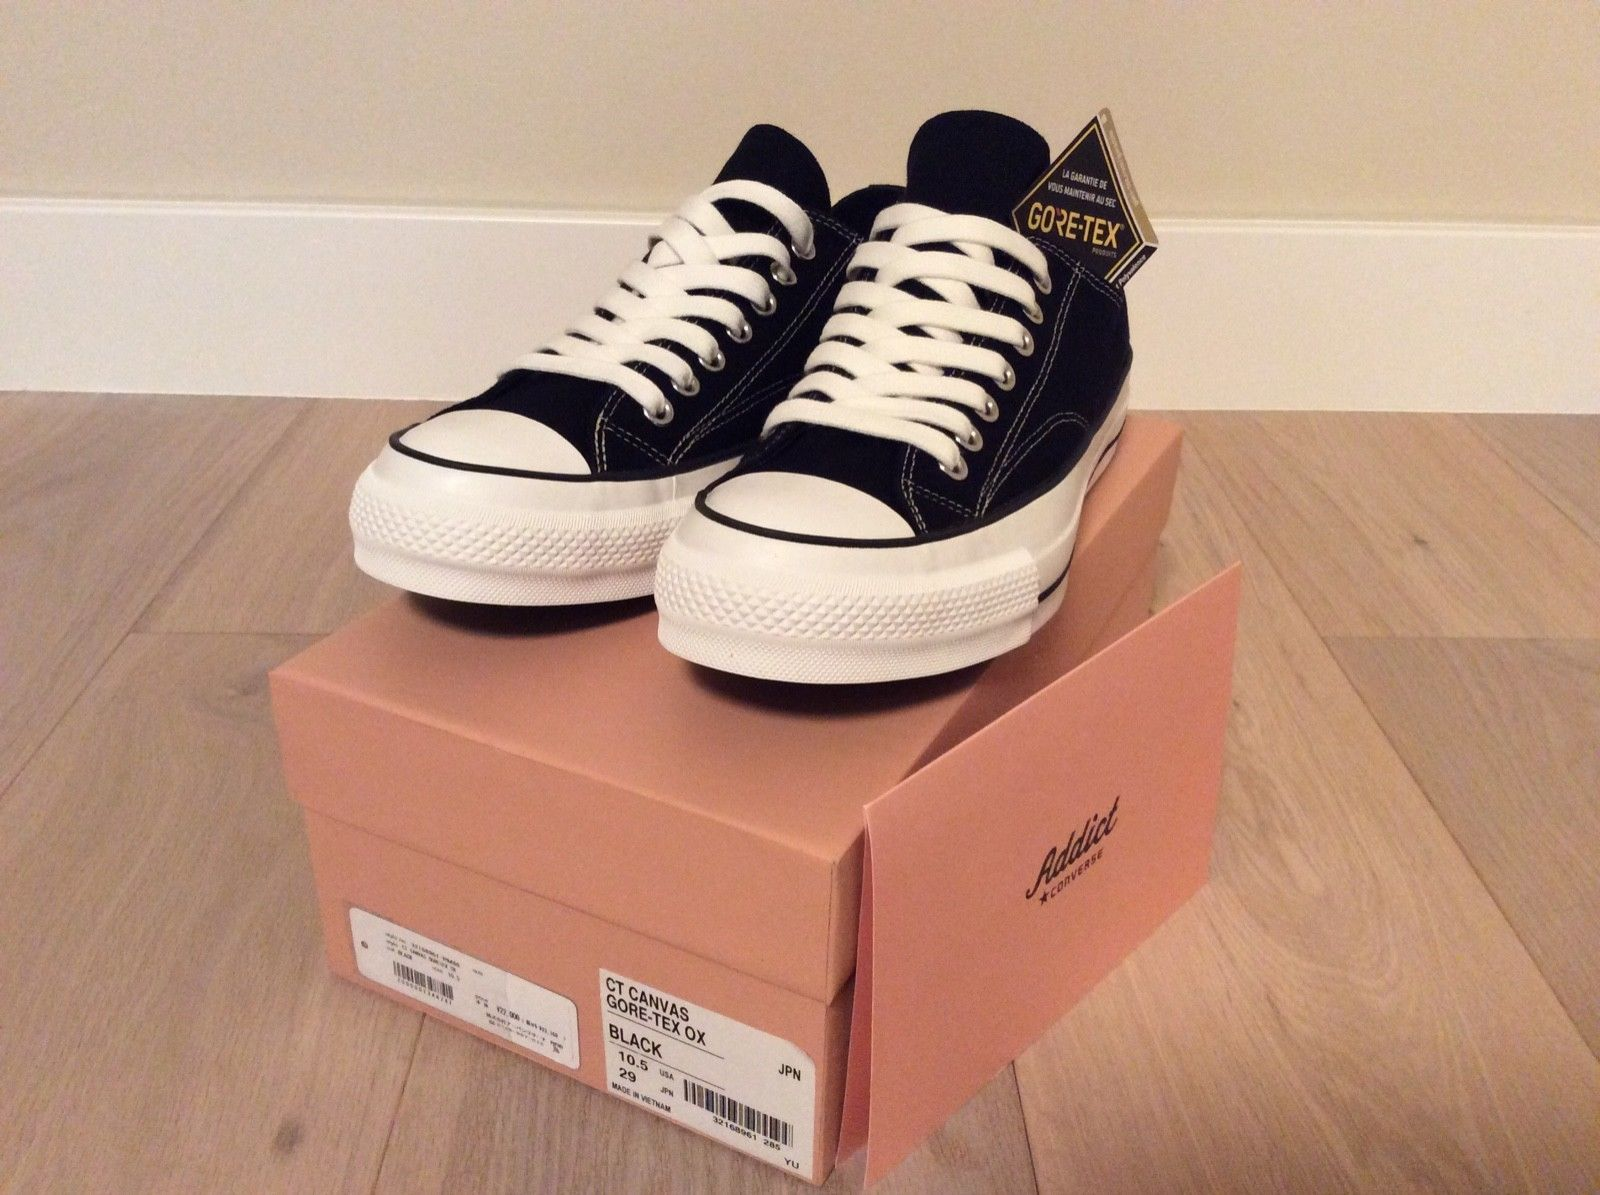 1eff87c6f6f088 CONVERSE ADDICT CHUCK TAYLOR CANVAS GORE-TEX OX US UK 10.5 JAPAN 70 NIGO JP